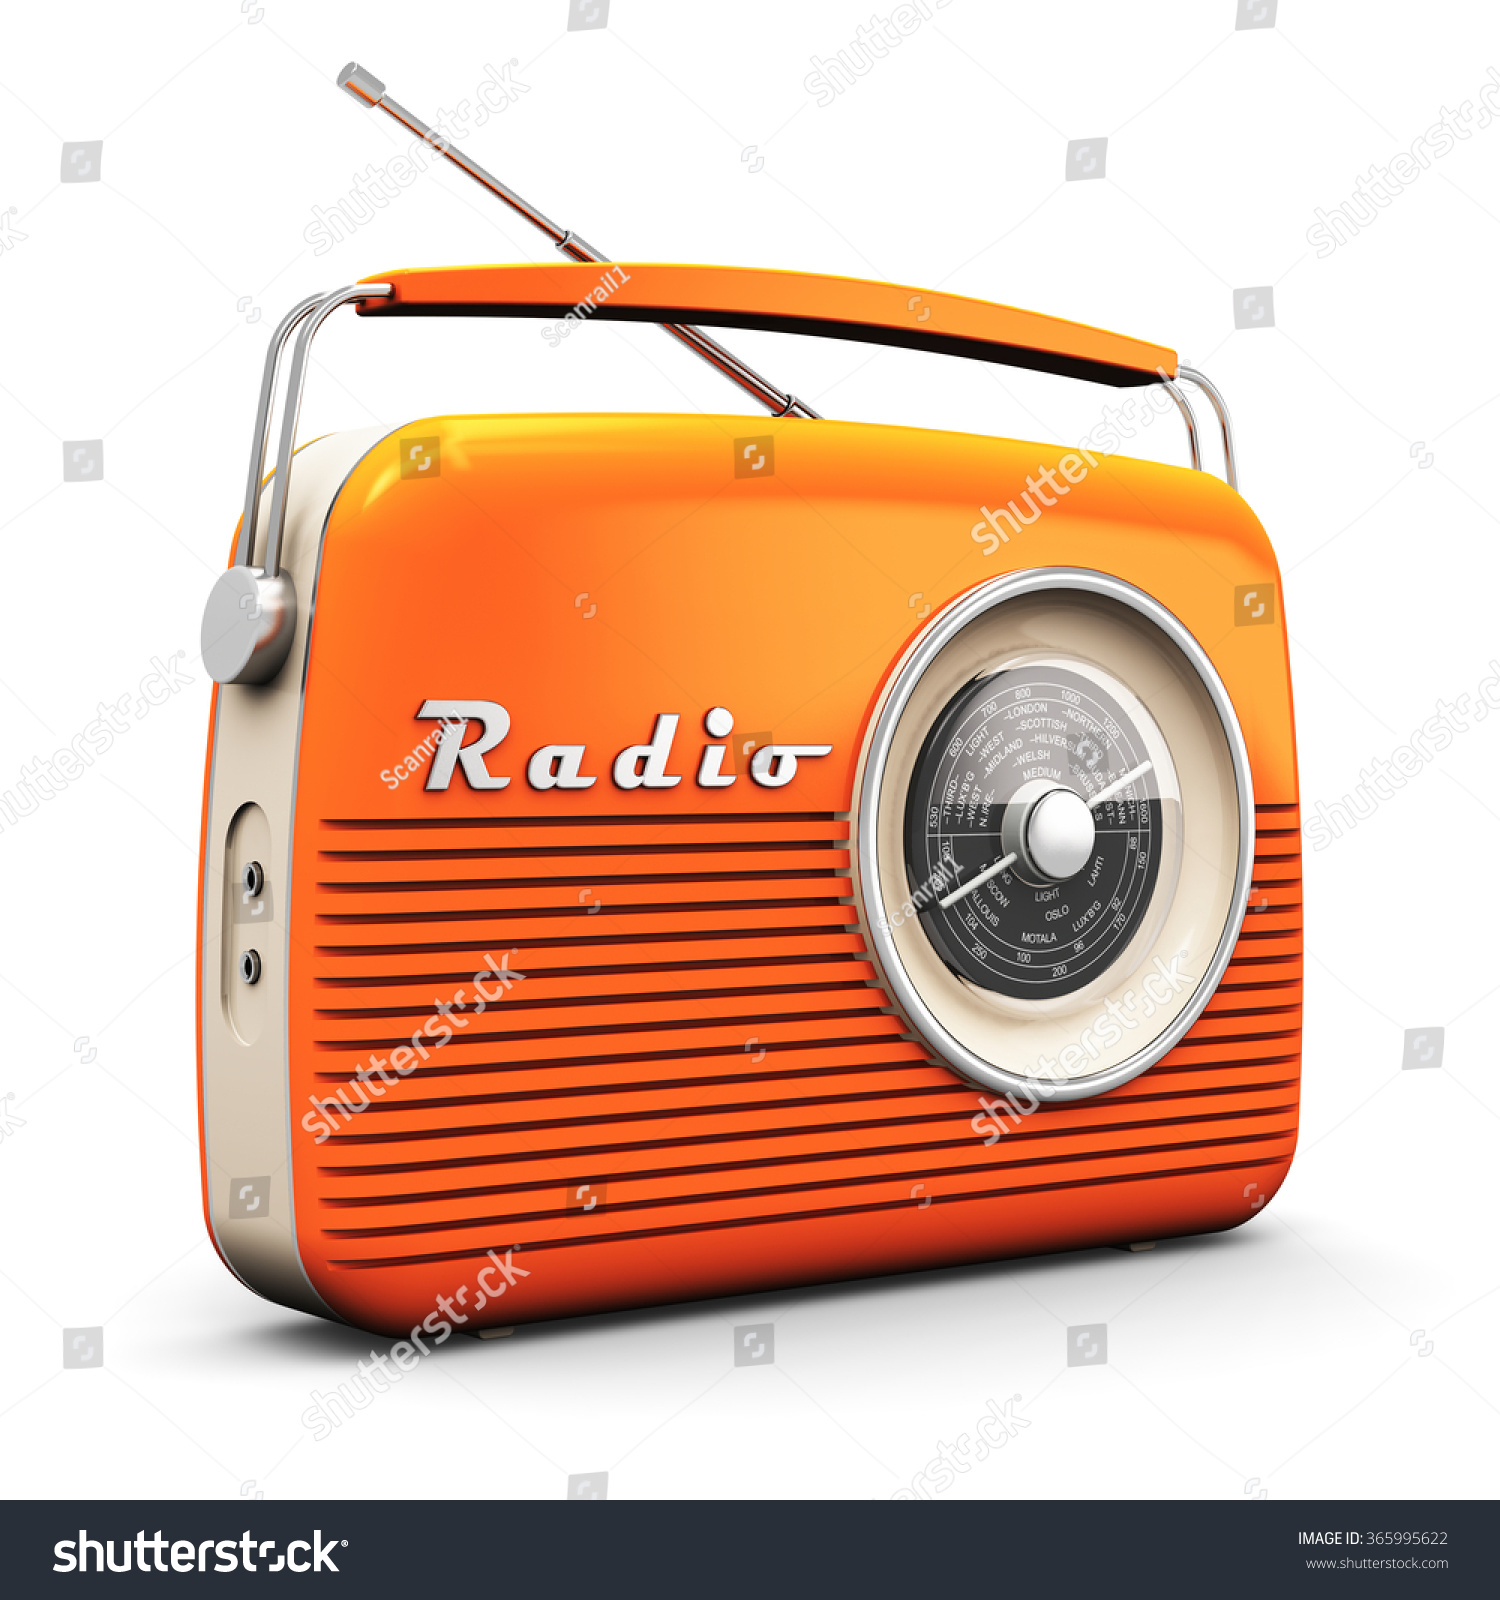 old orange vintage retro style radio stock illustration 365995622 shutterstock. Black Bedroom Furniture Sets. Home Design Ideas